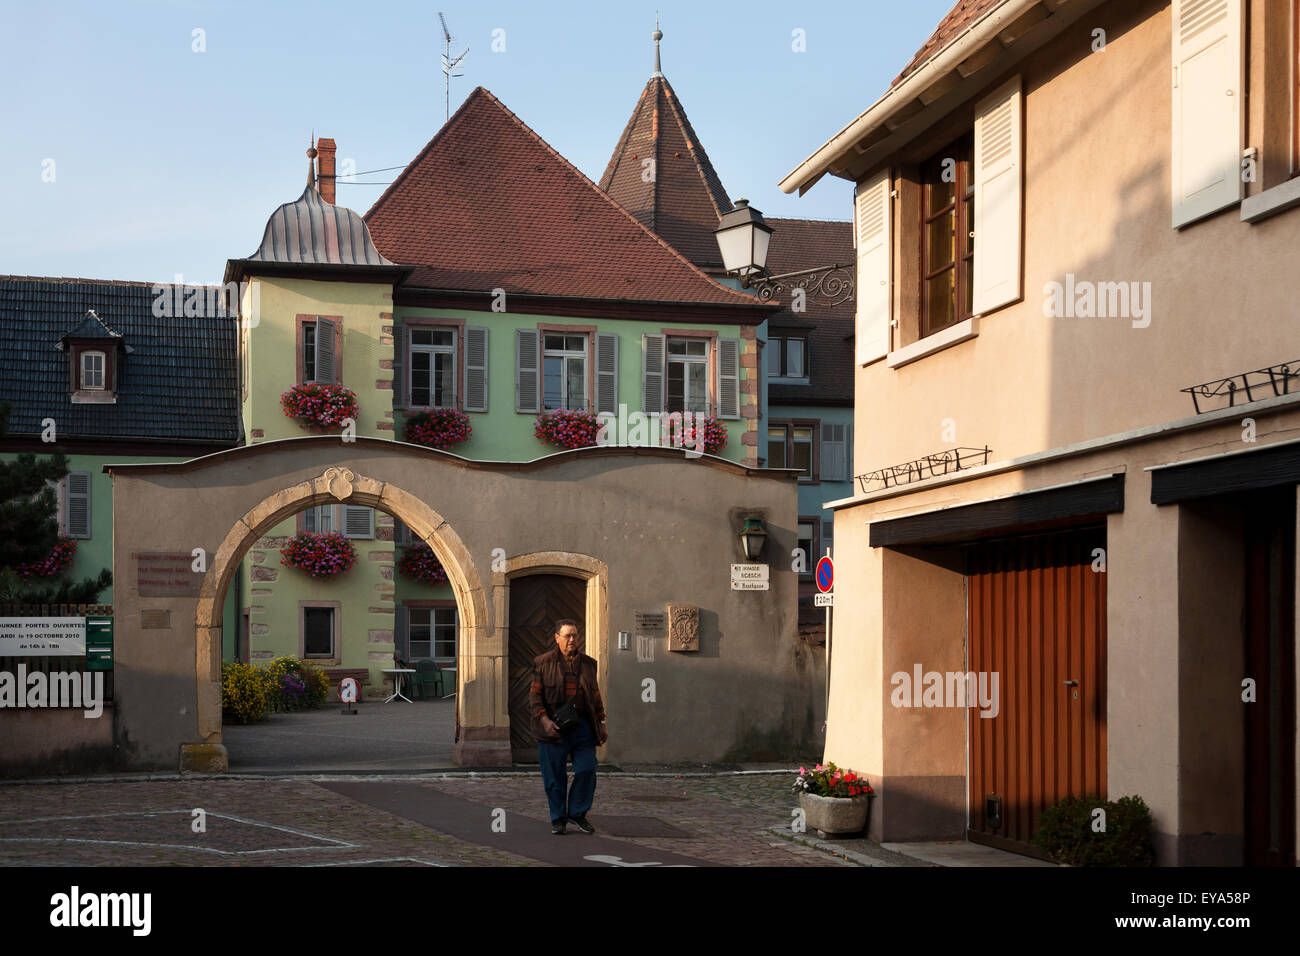 Tuerkheim, France, entrance to a nursing home - Stock Image